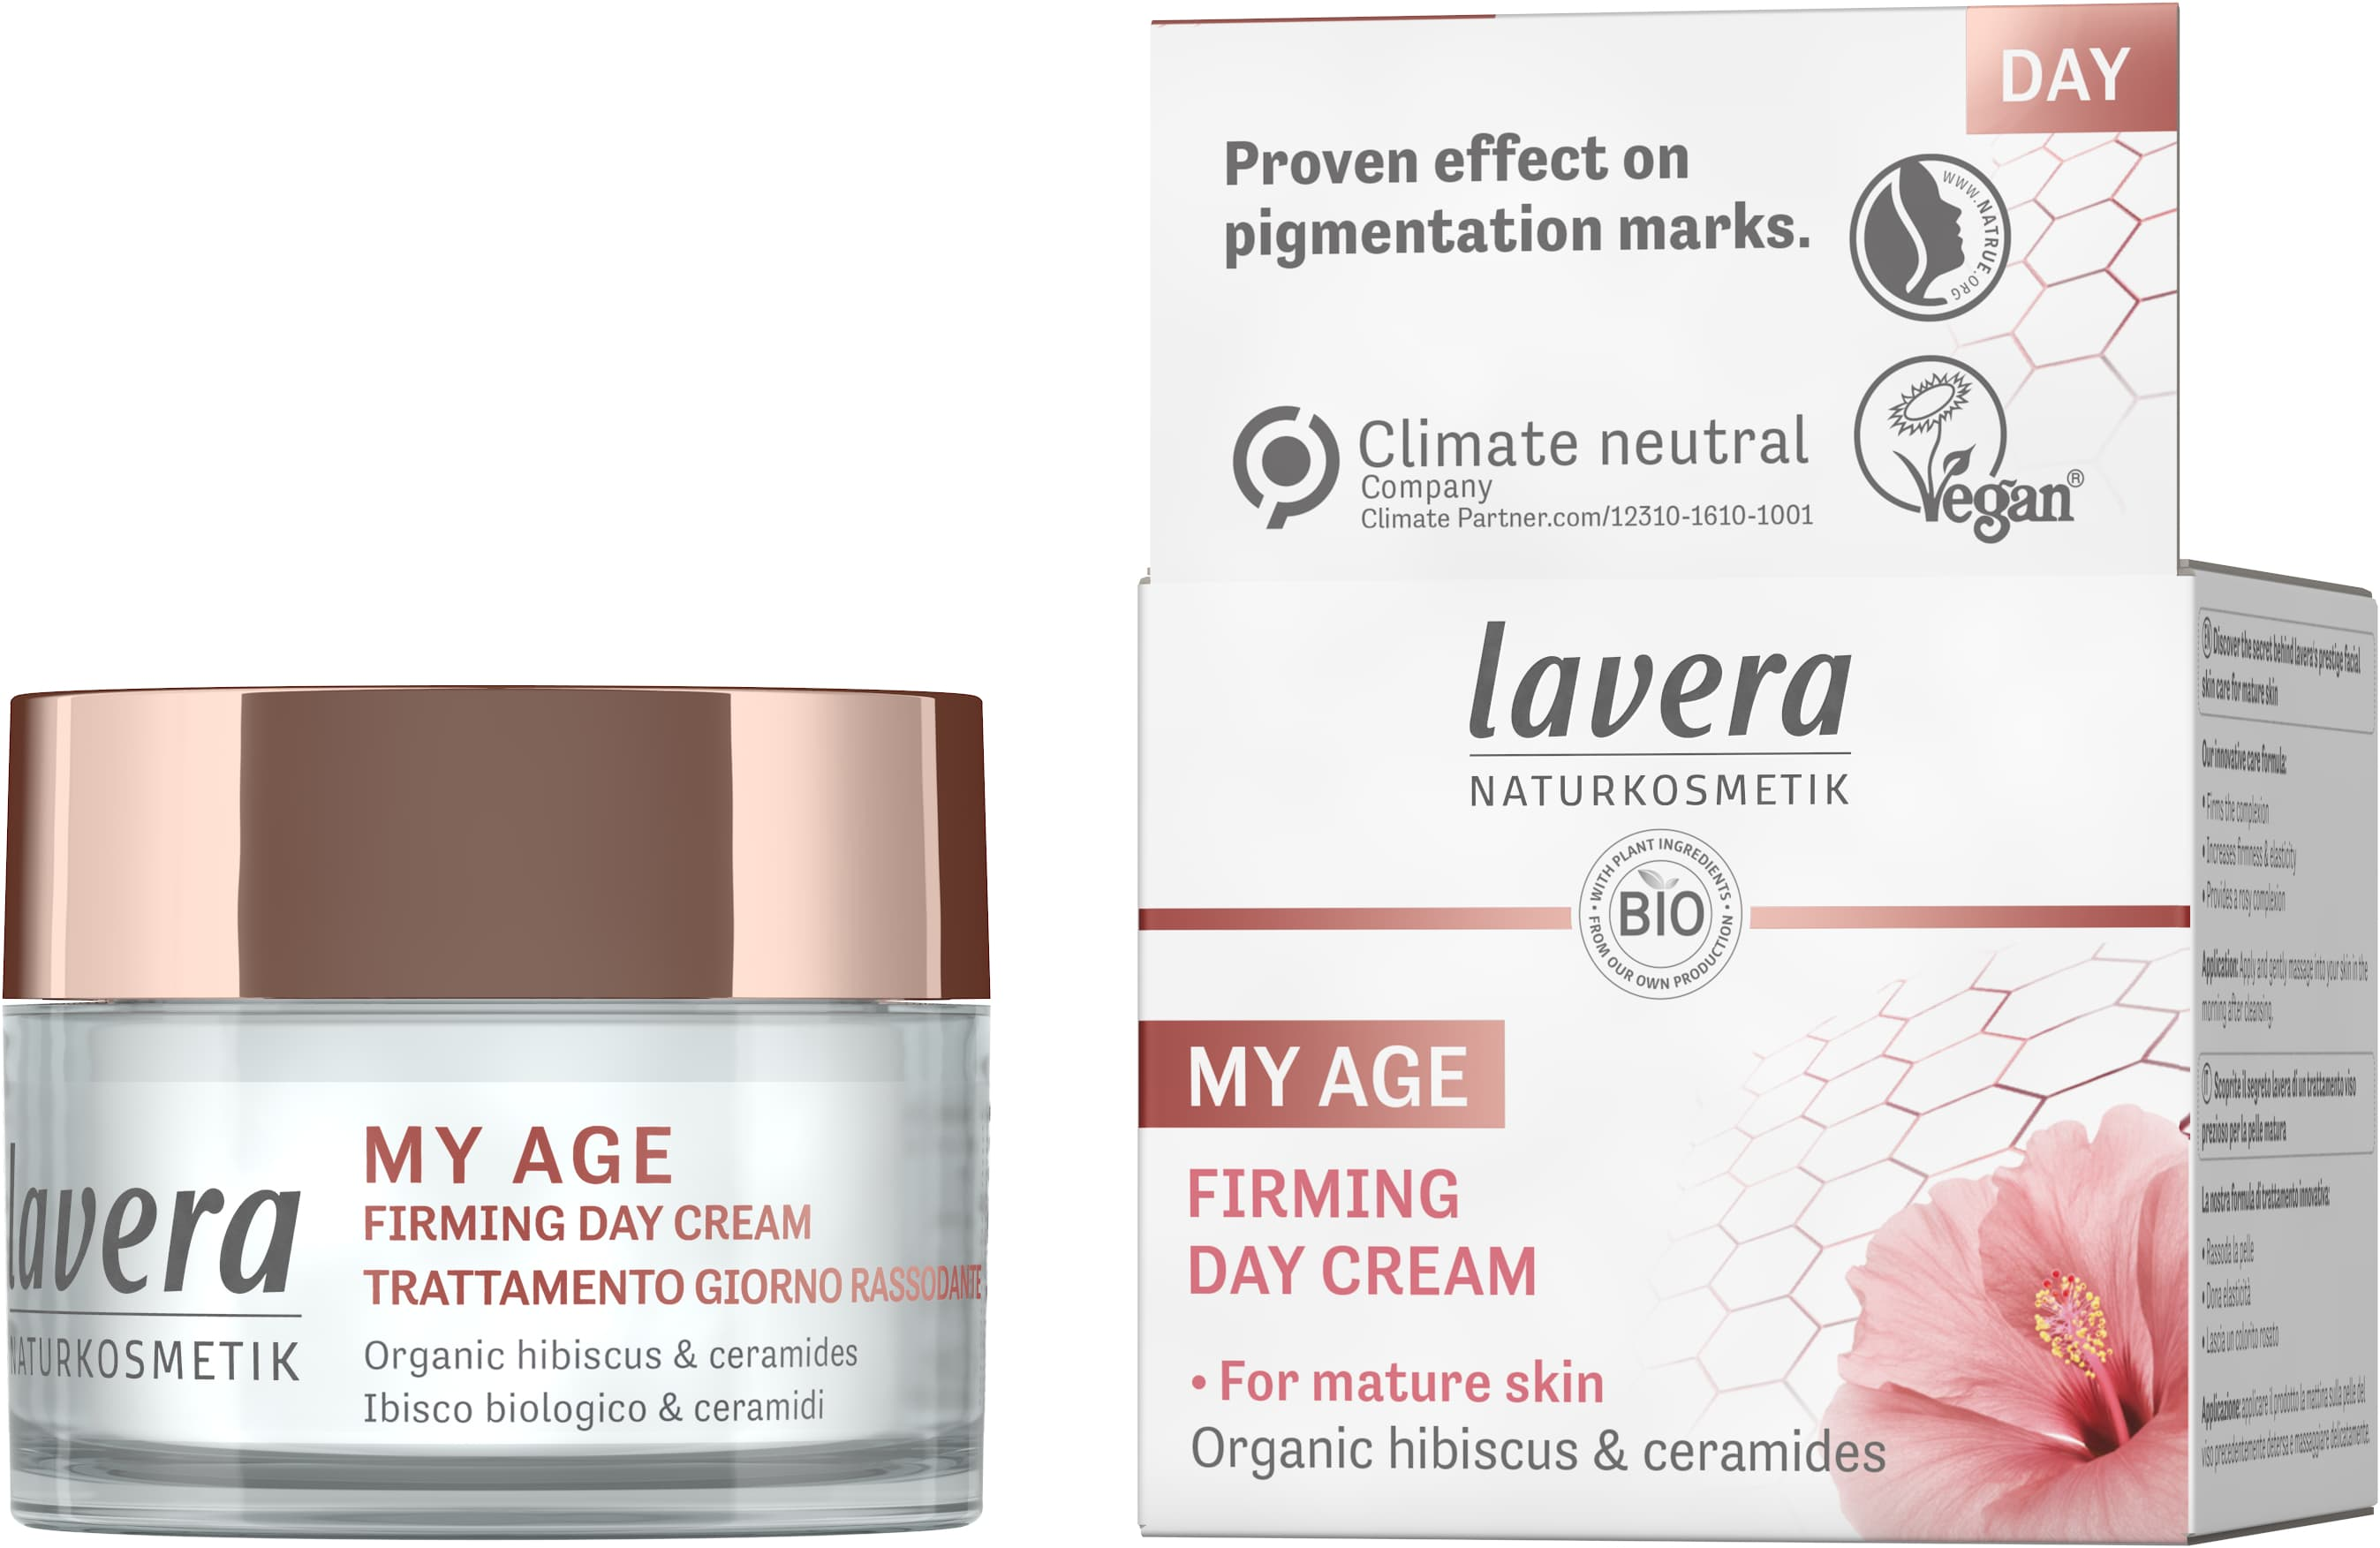 MY AGE Firming Day Cream